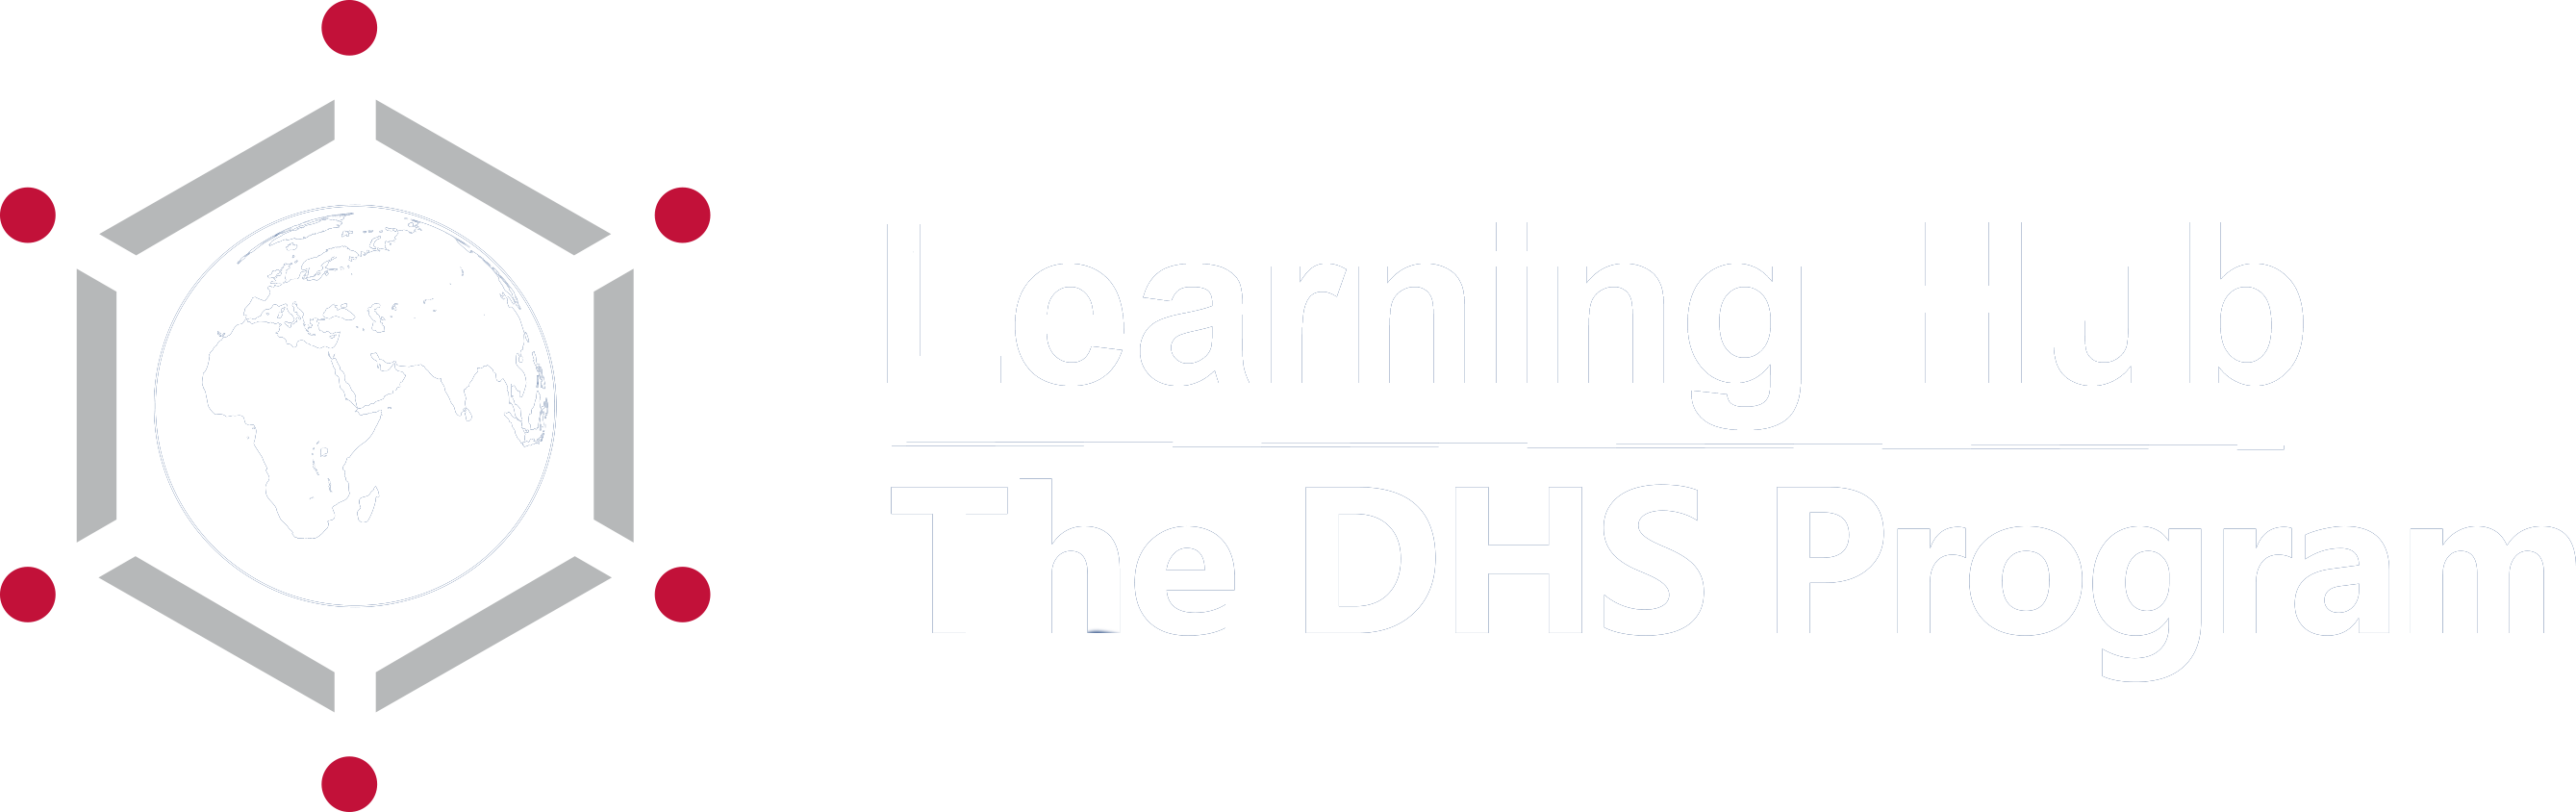 The DHS Program Online Learning Platform